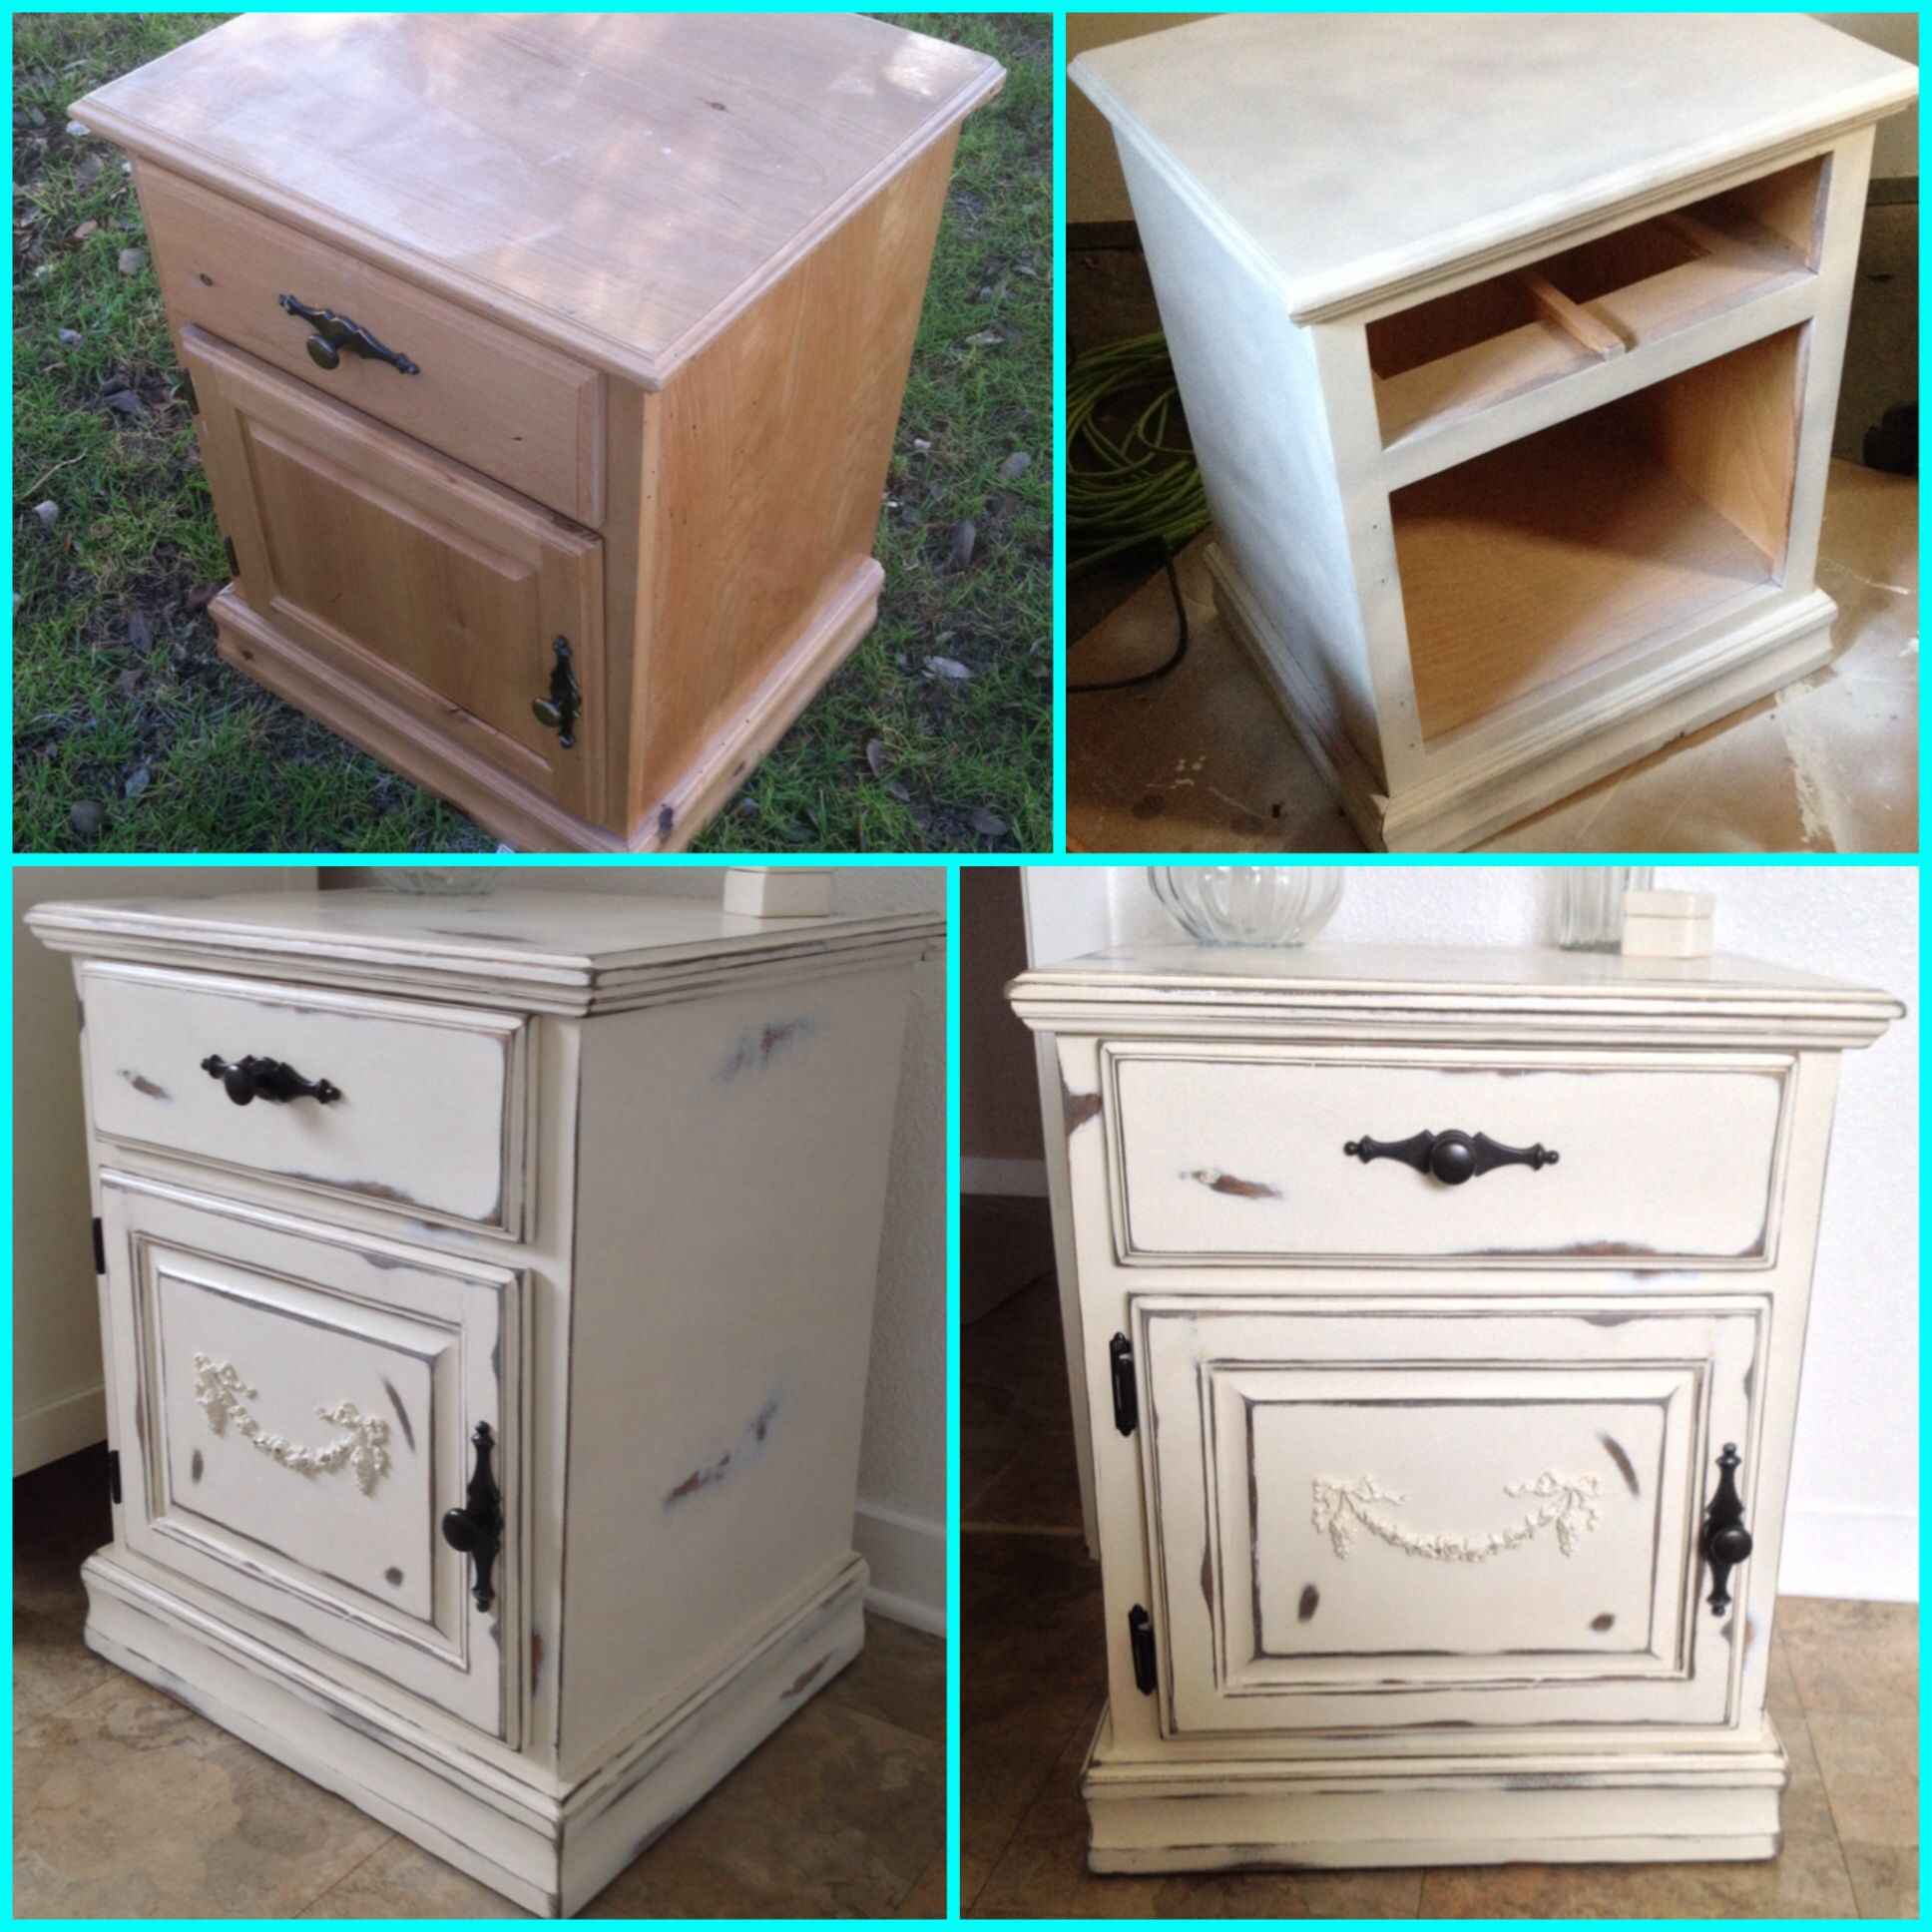 My DIY shabby chic nightstand. Furniture makeover, painted wood furniture,  distressed paint!